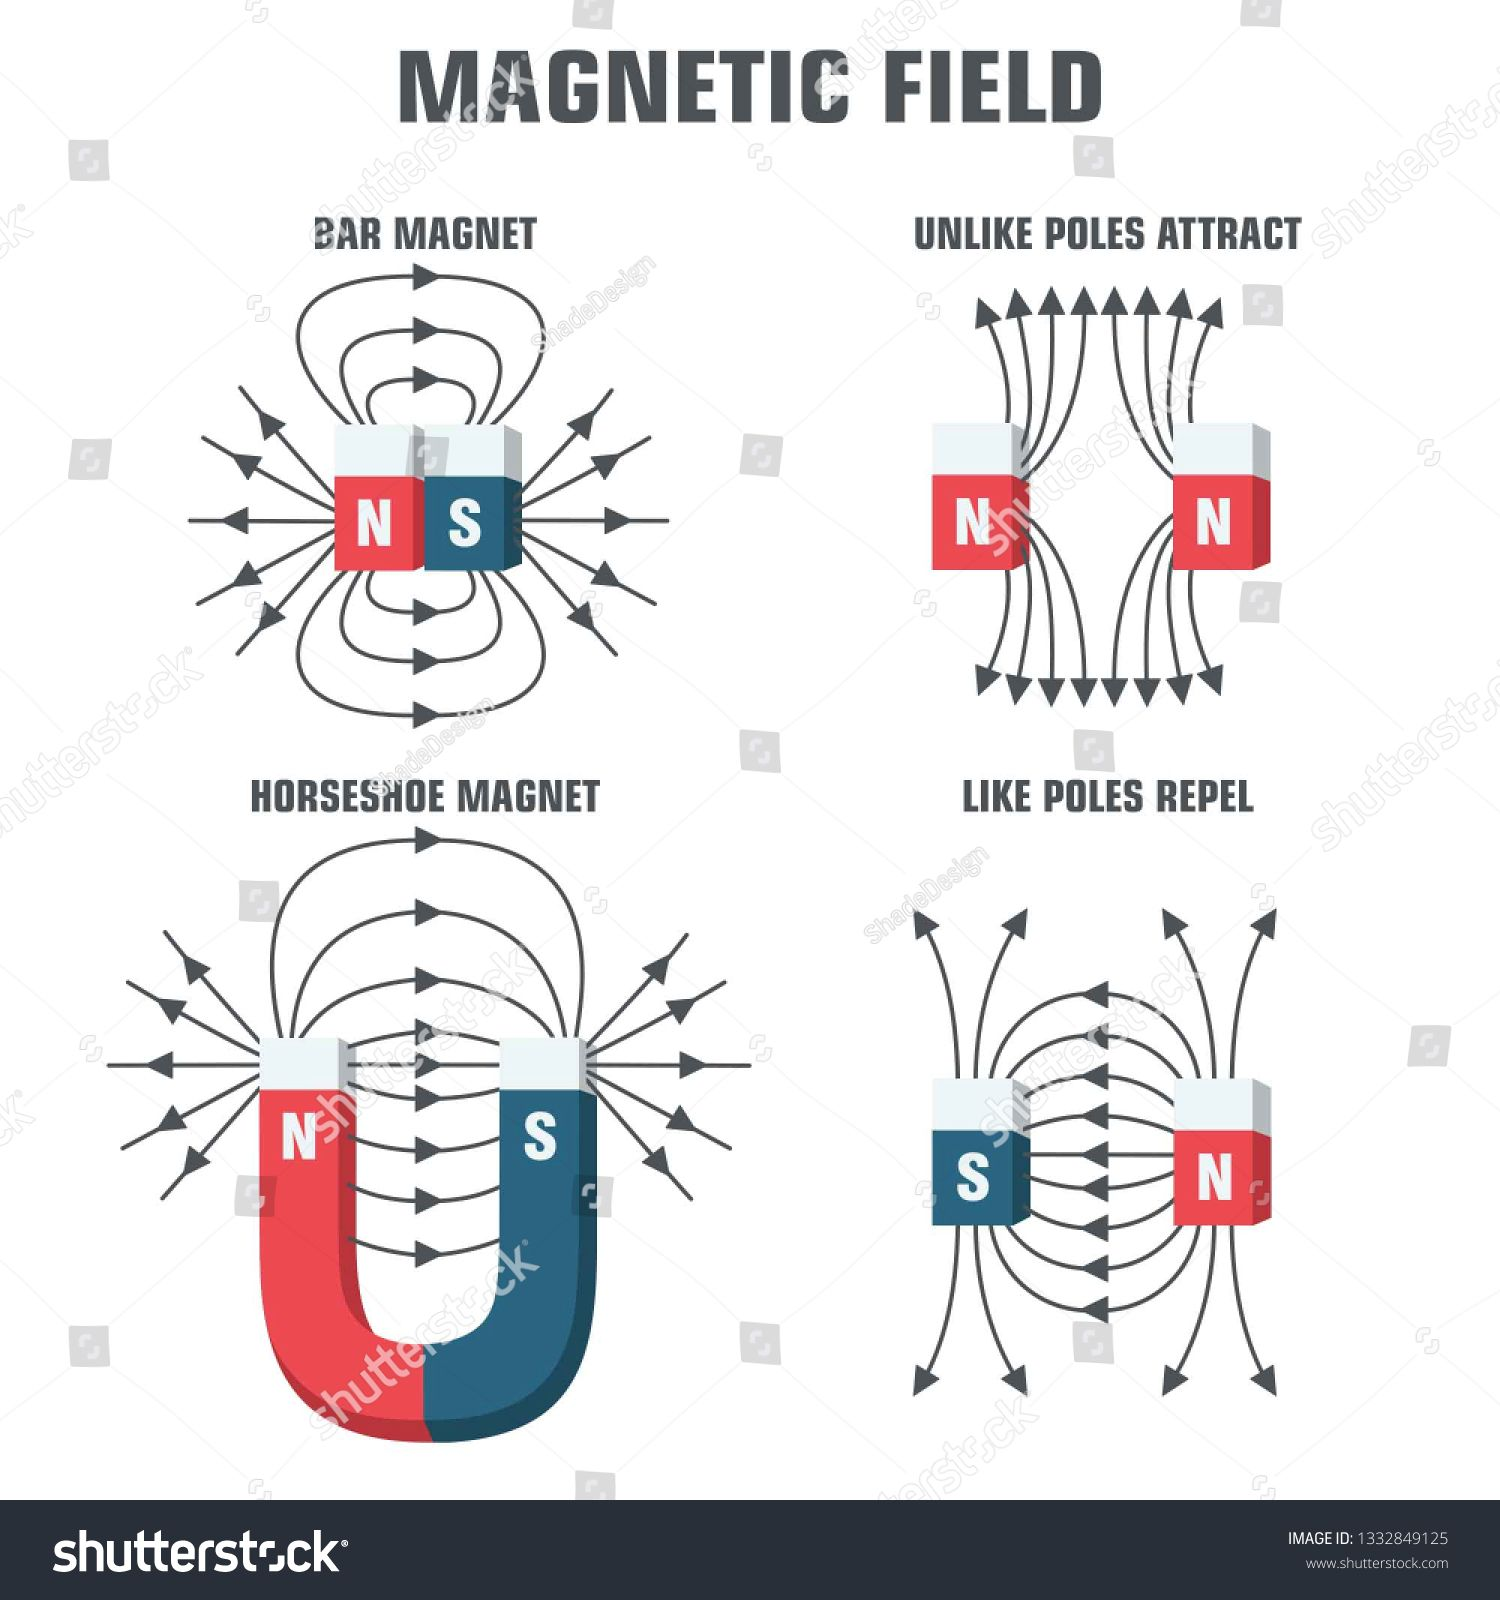 Vector Scientific Icon Magnetic Fields Magnet Blue And Red With The Poles And Directions Of Magnetic Fields Magnet Il In 2020 Magnetic Field Horseshoe Magnet Magnets